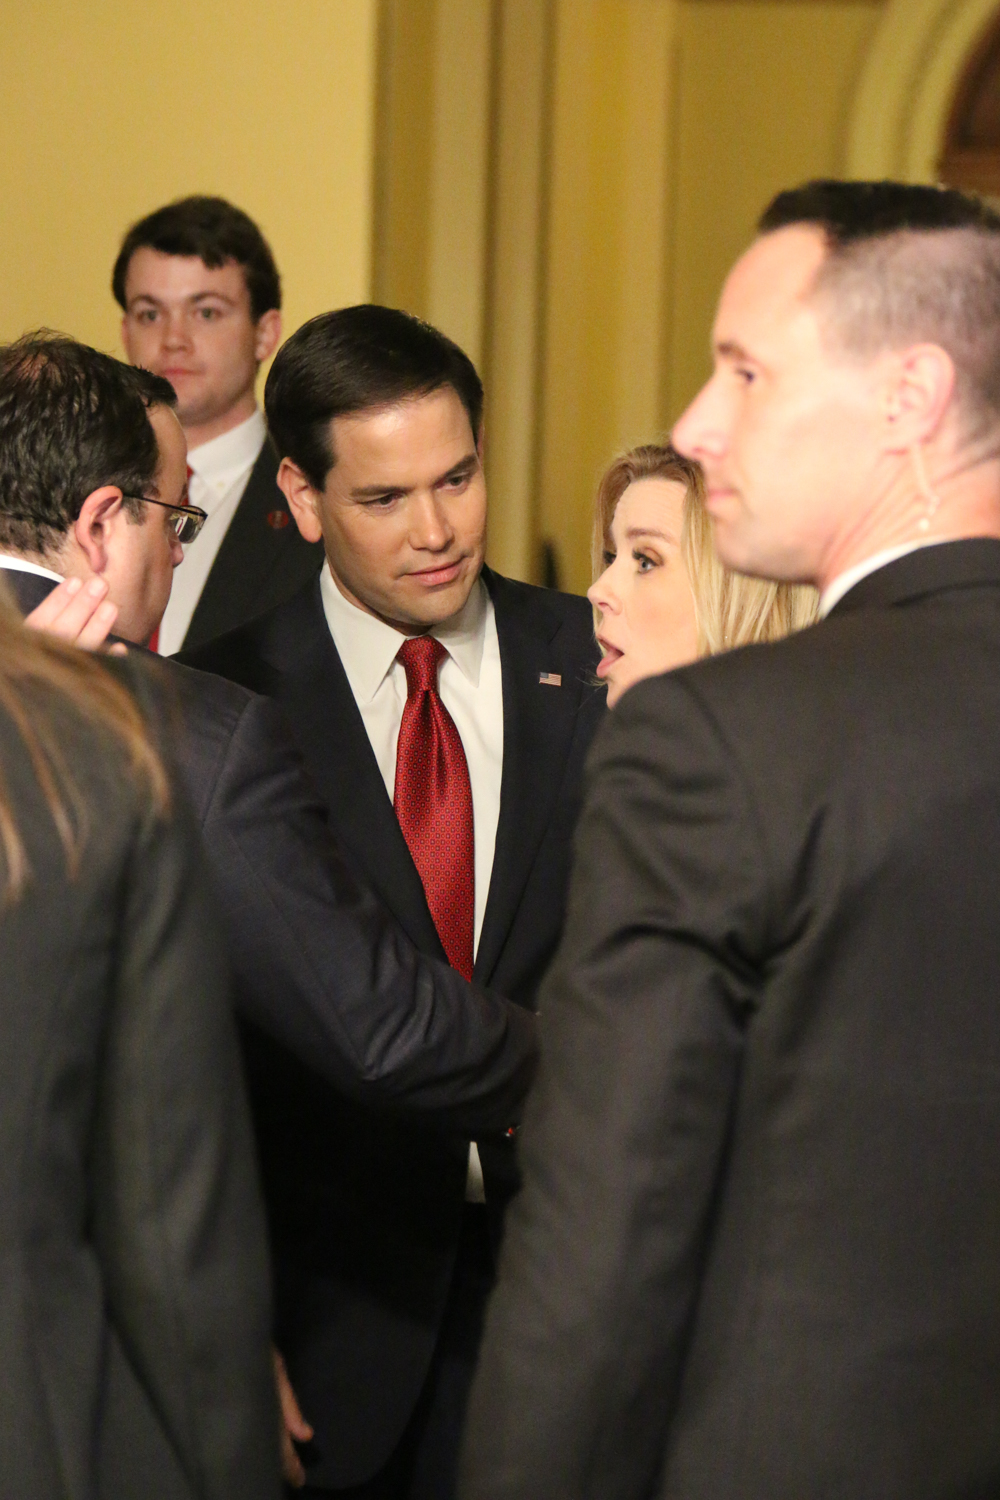 Sen. Marco Rubio, R-Fla., speaks with reporters in Statuary Hall. Later, he posed for pictures with senators and representatives and their invited guests.